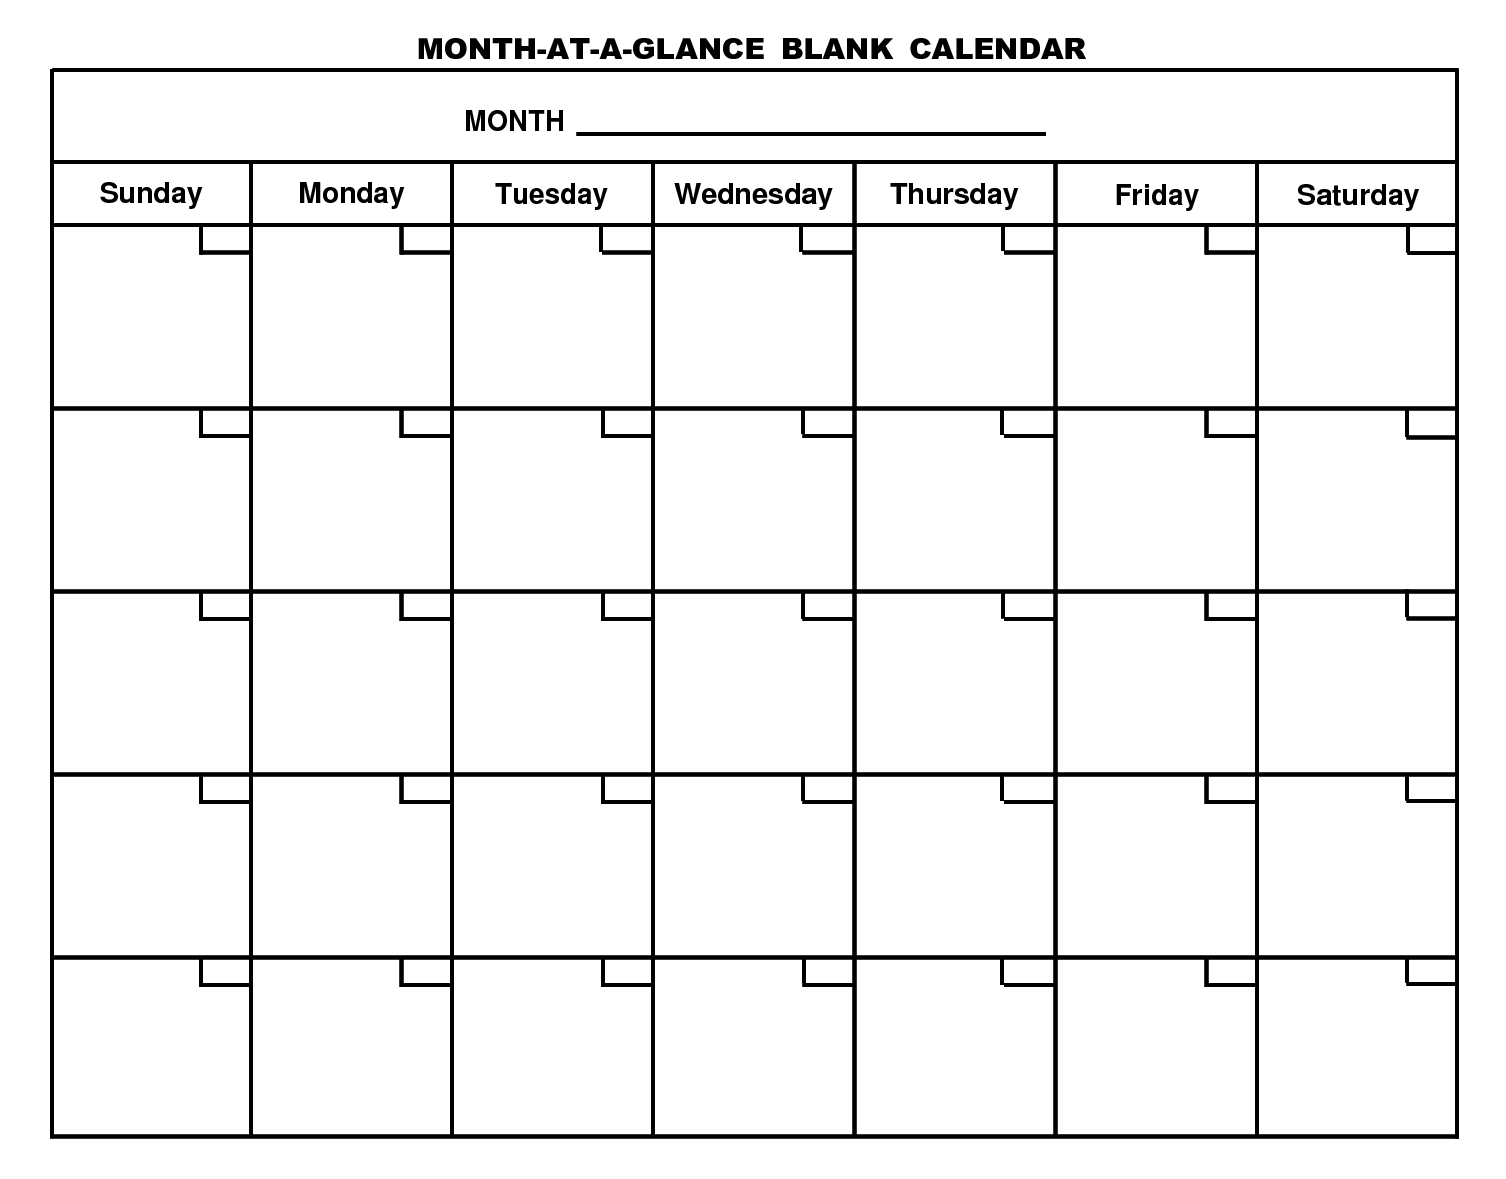 Blank Template For 30 Days | Example Calendar Printable 30 Day Blank Calendar